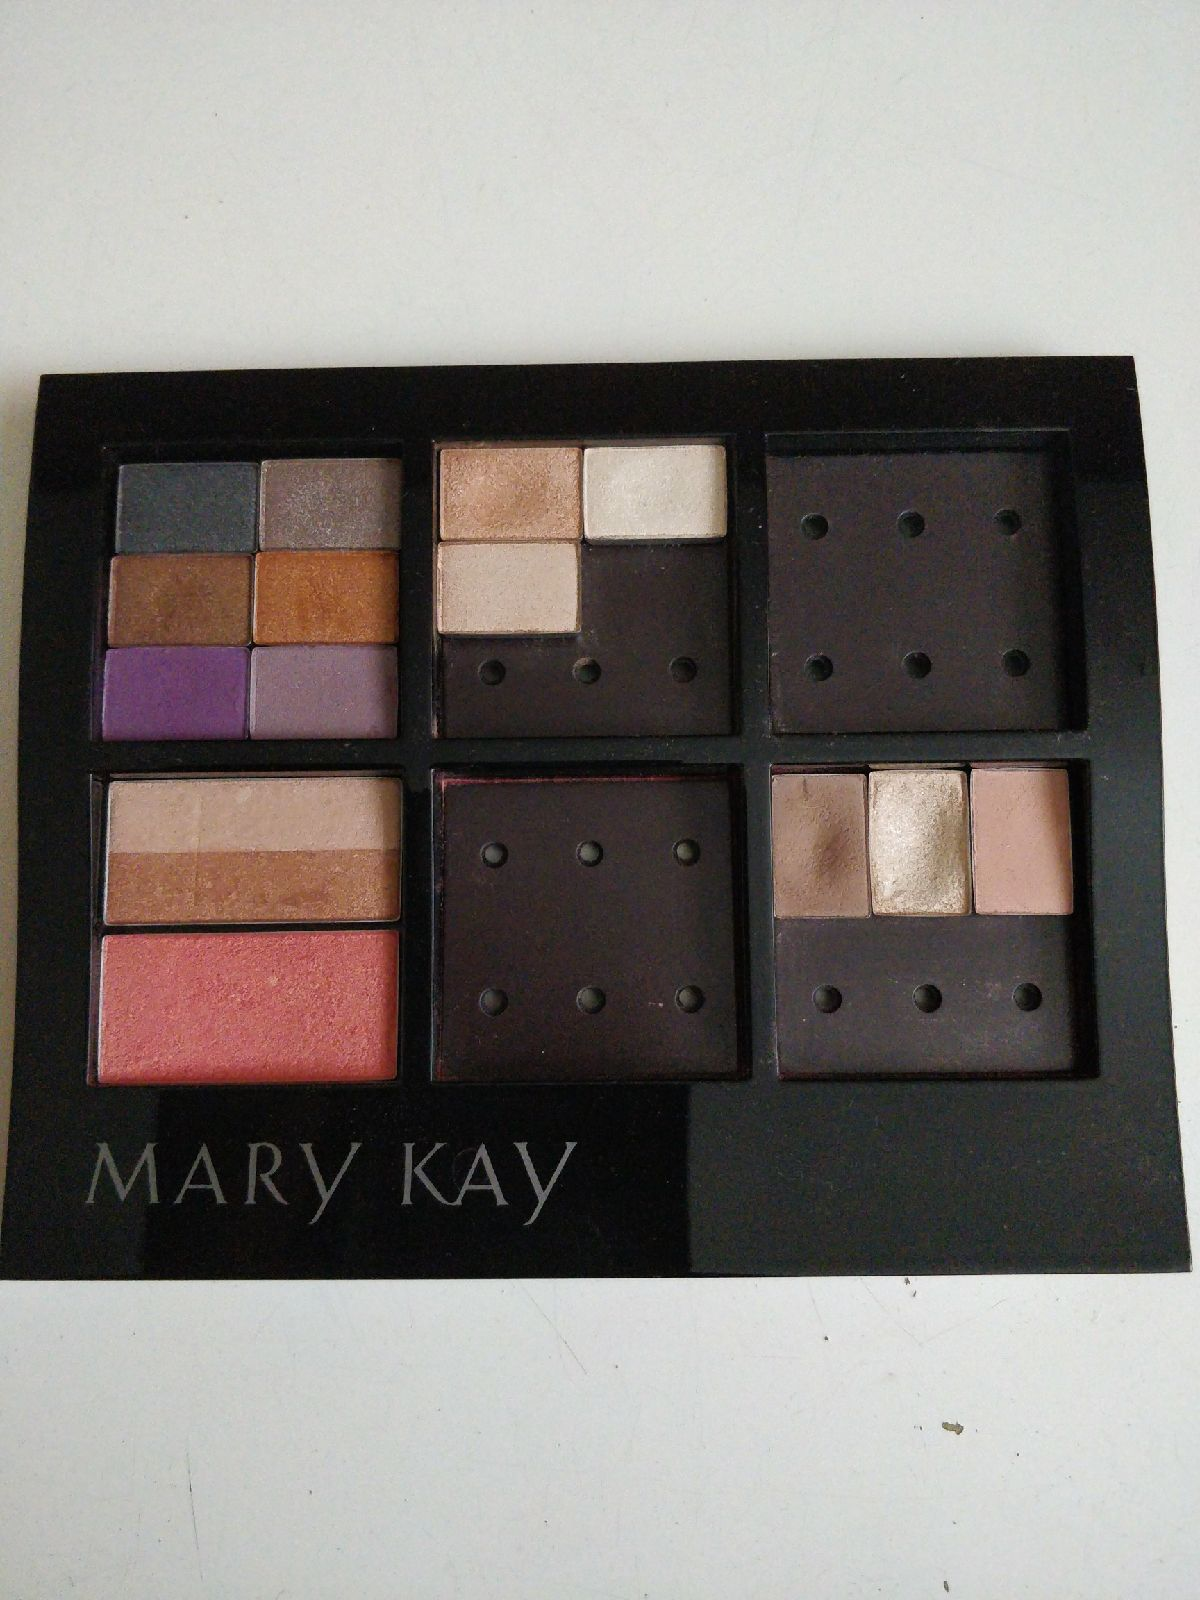 Mary kay magnetic make up palette